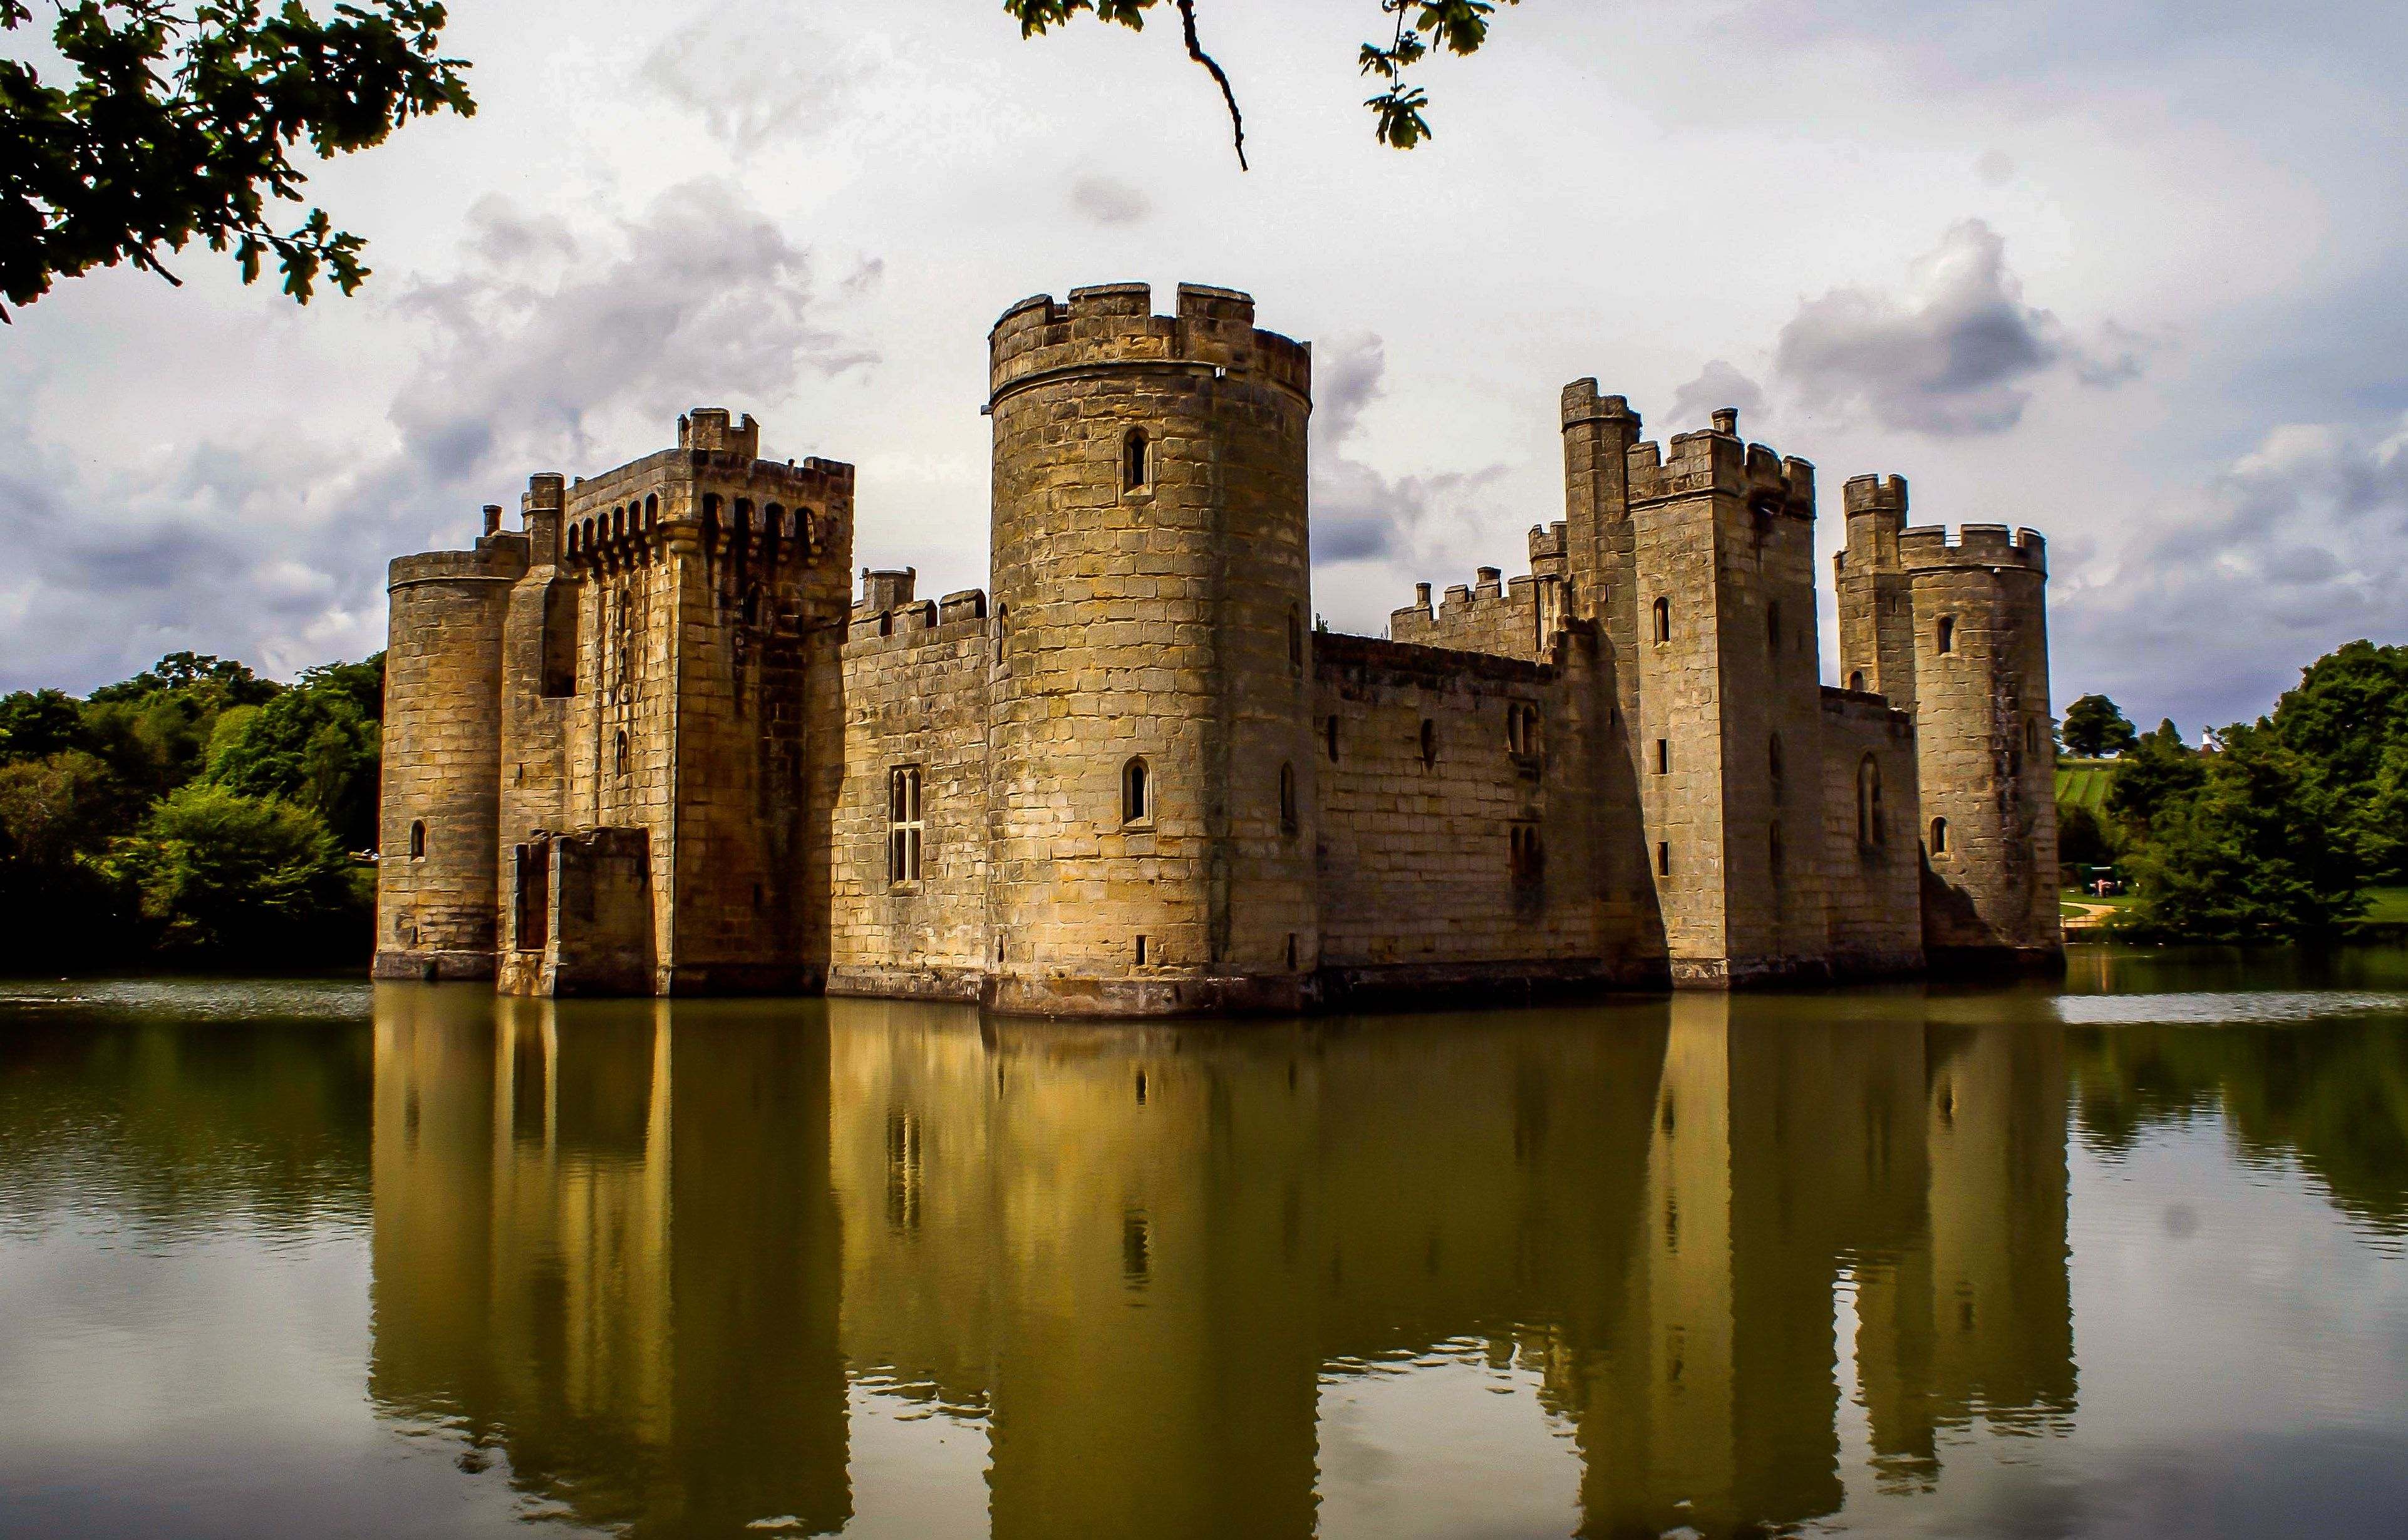 The Beautiful 14th Century Bodiam Castle Is A Moated Castle In